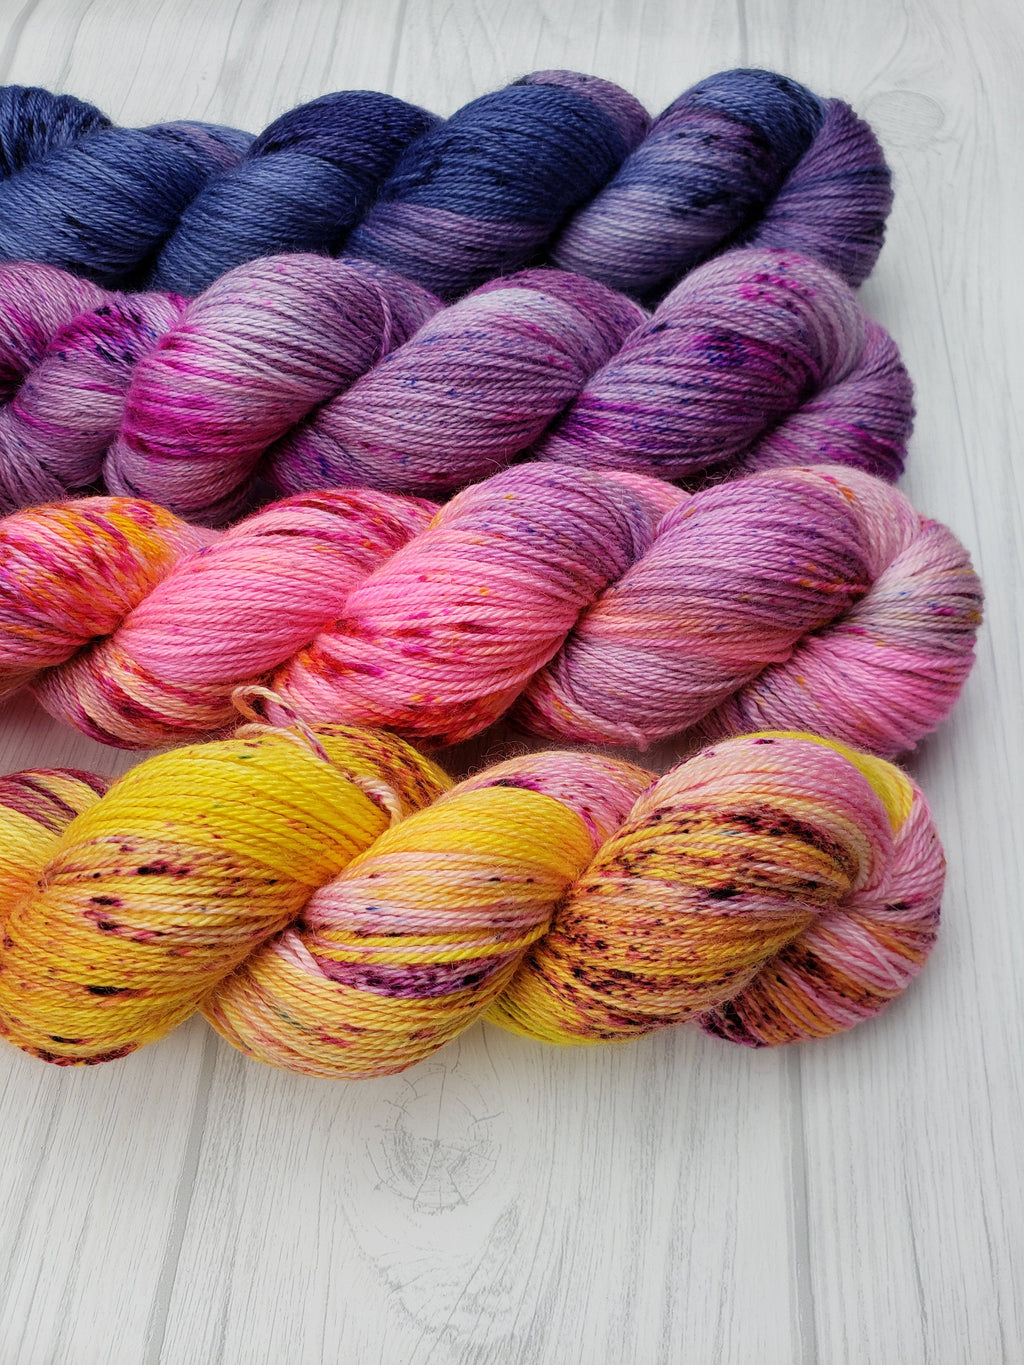 Seattle Sunrise, Hand Dyed Fade Set in Sock Weight - Spindle warps yarns